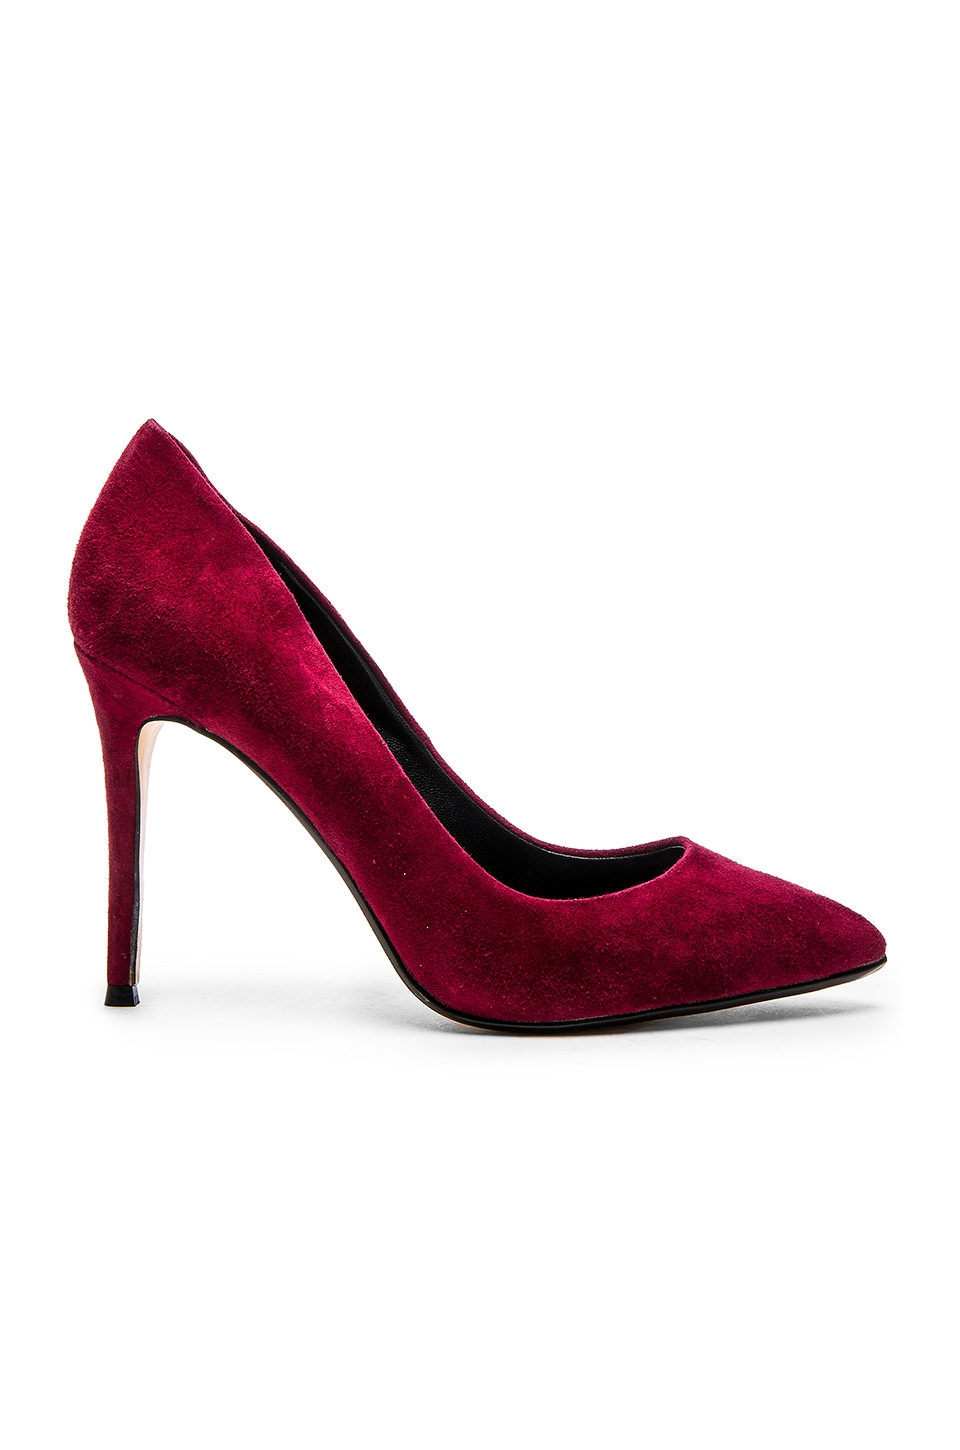 RAYE Tia Pump in Merlot